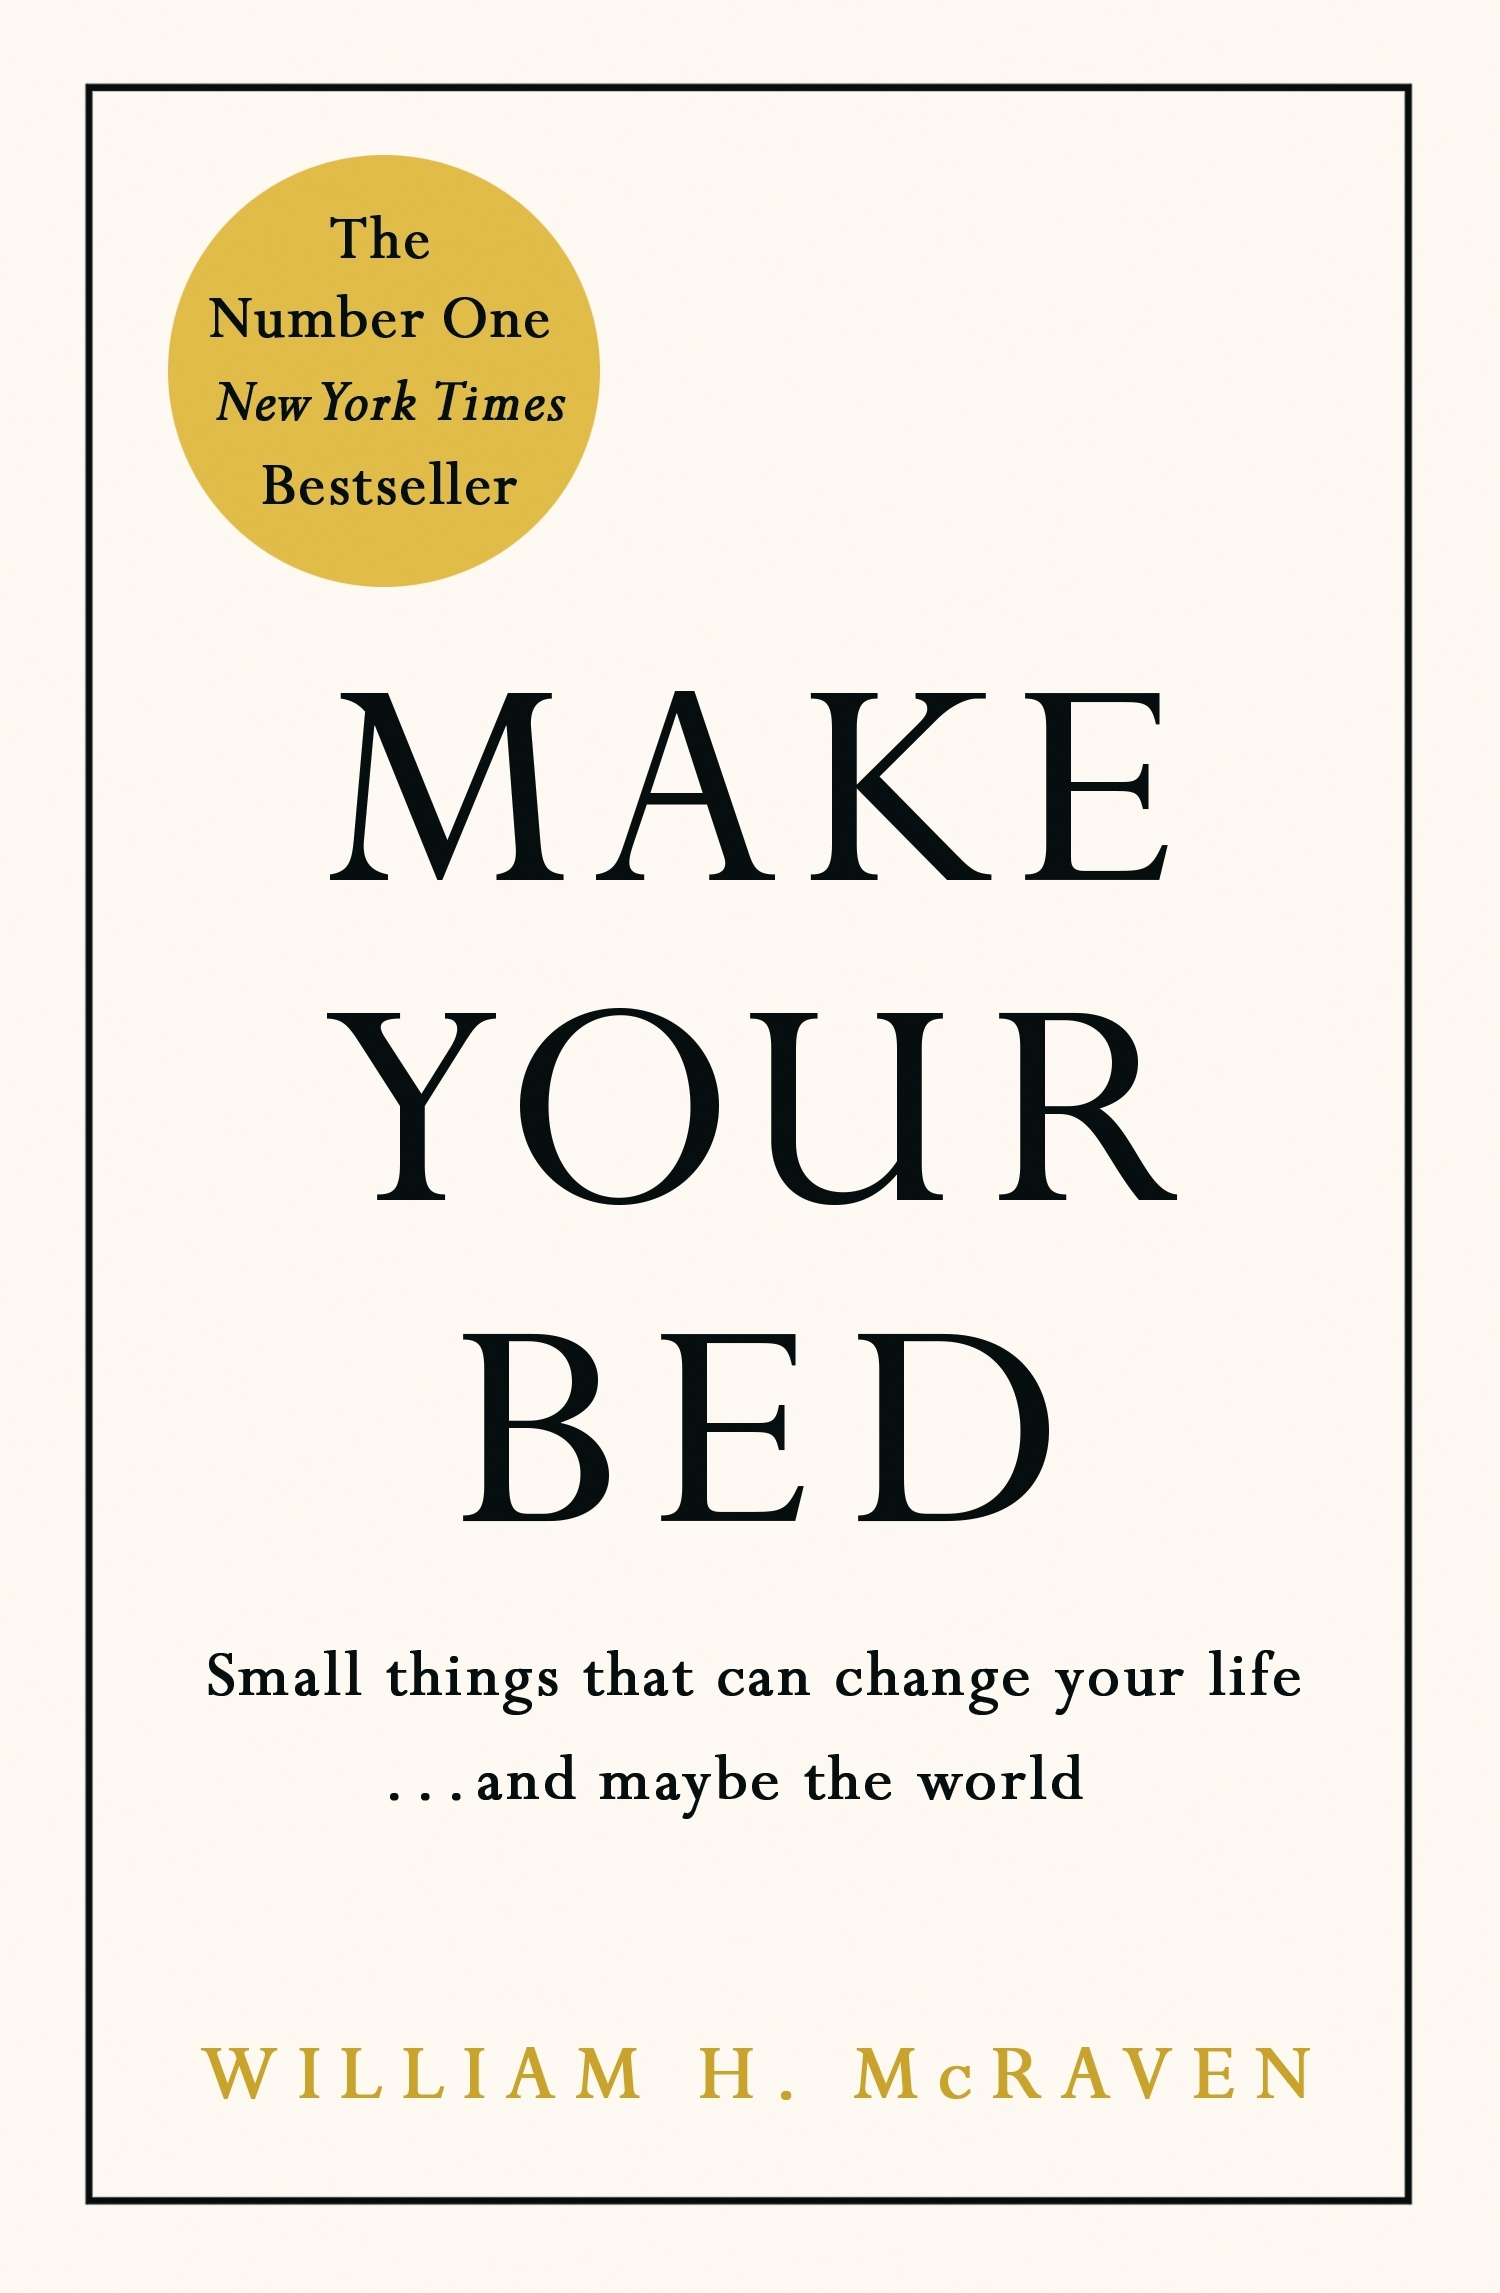 Make Your Bed by Admiral William H. McRaven, ISBN: 9780718188863